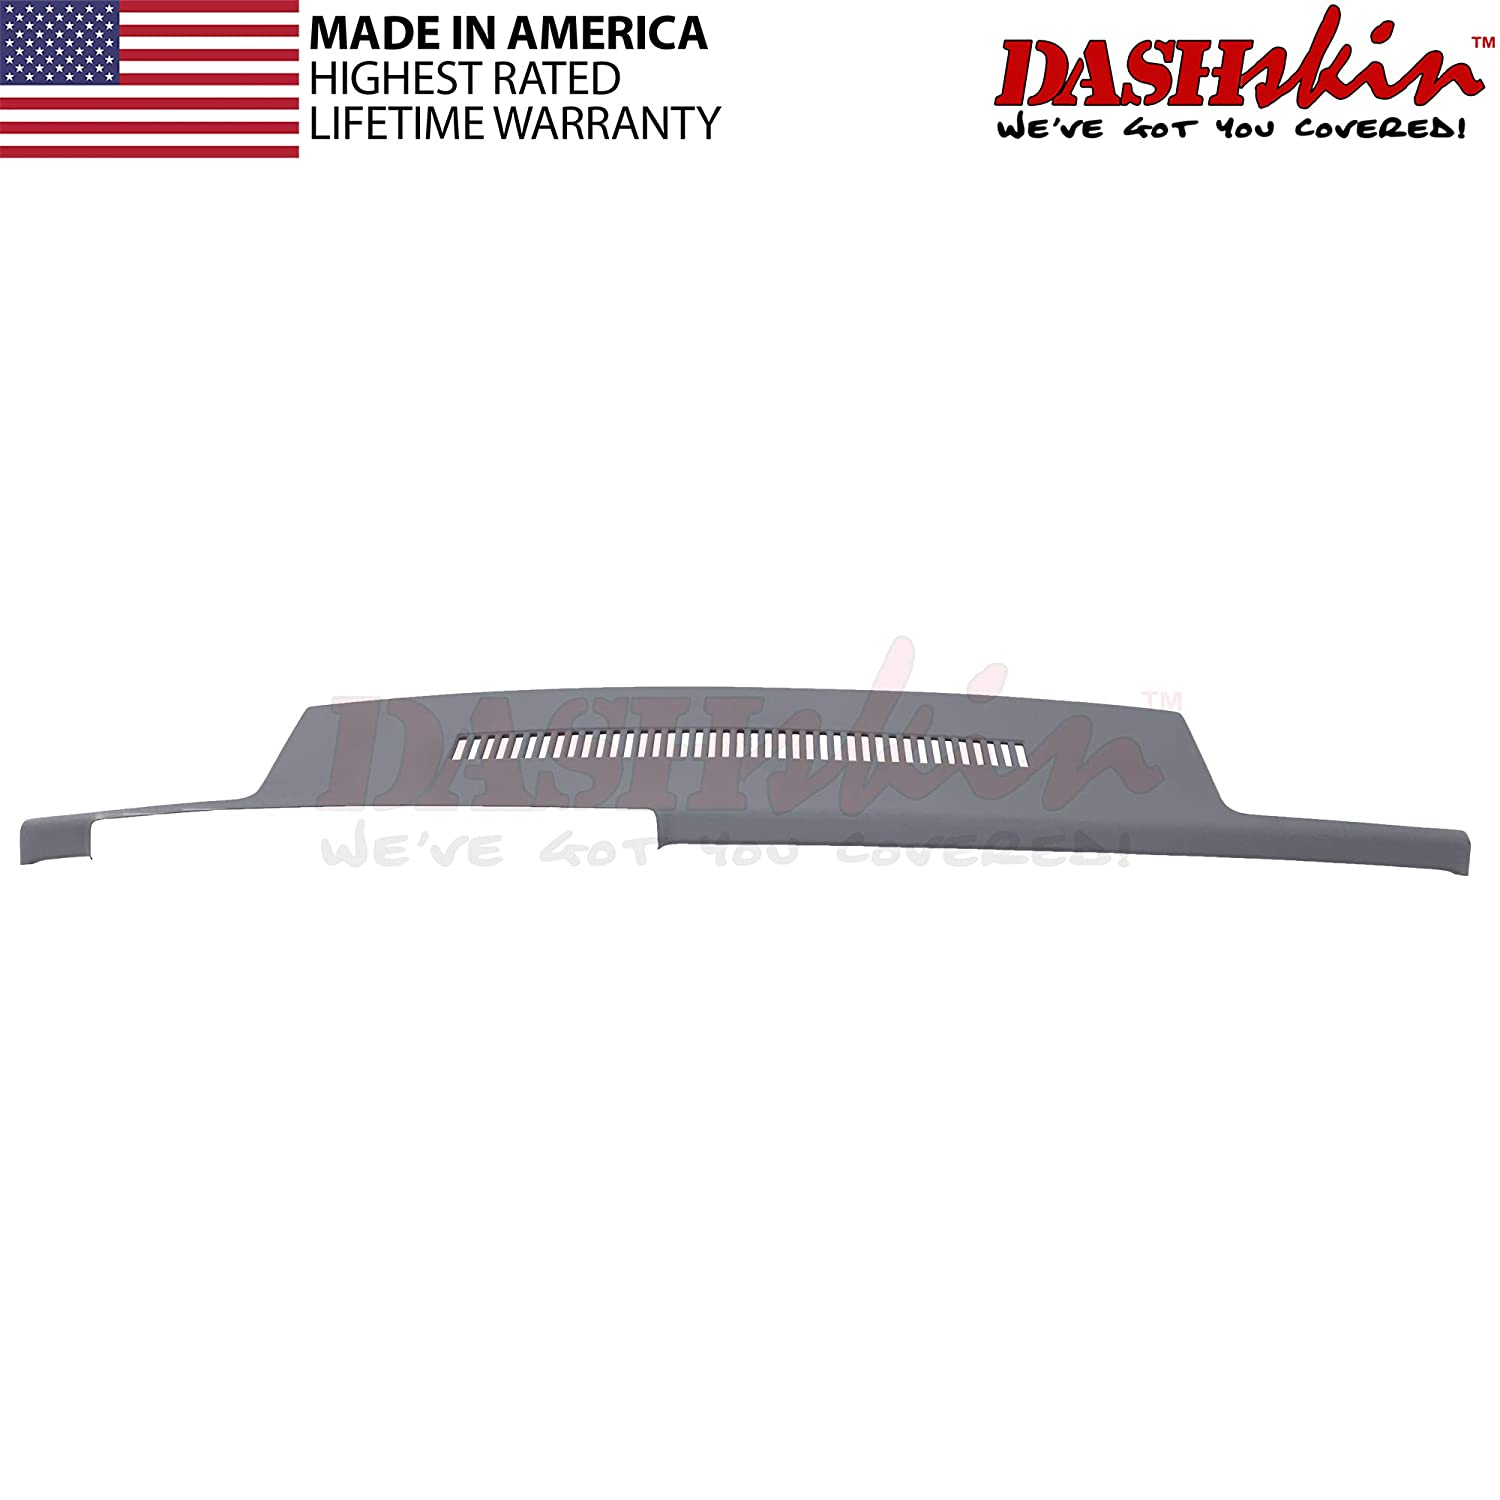 DashSkin Molded Dash Cover Compatible with 88-94 GM Trucks in Beige USA Made